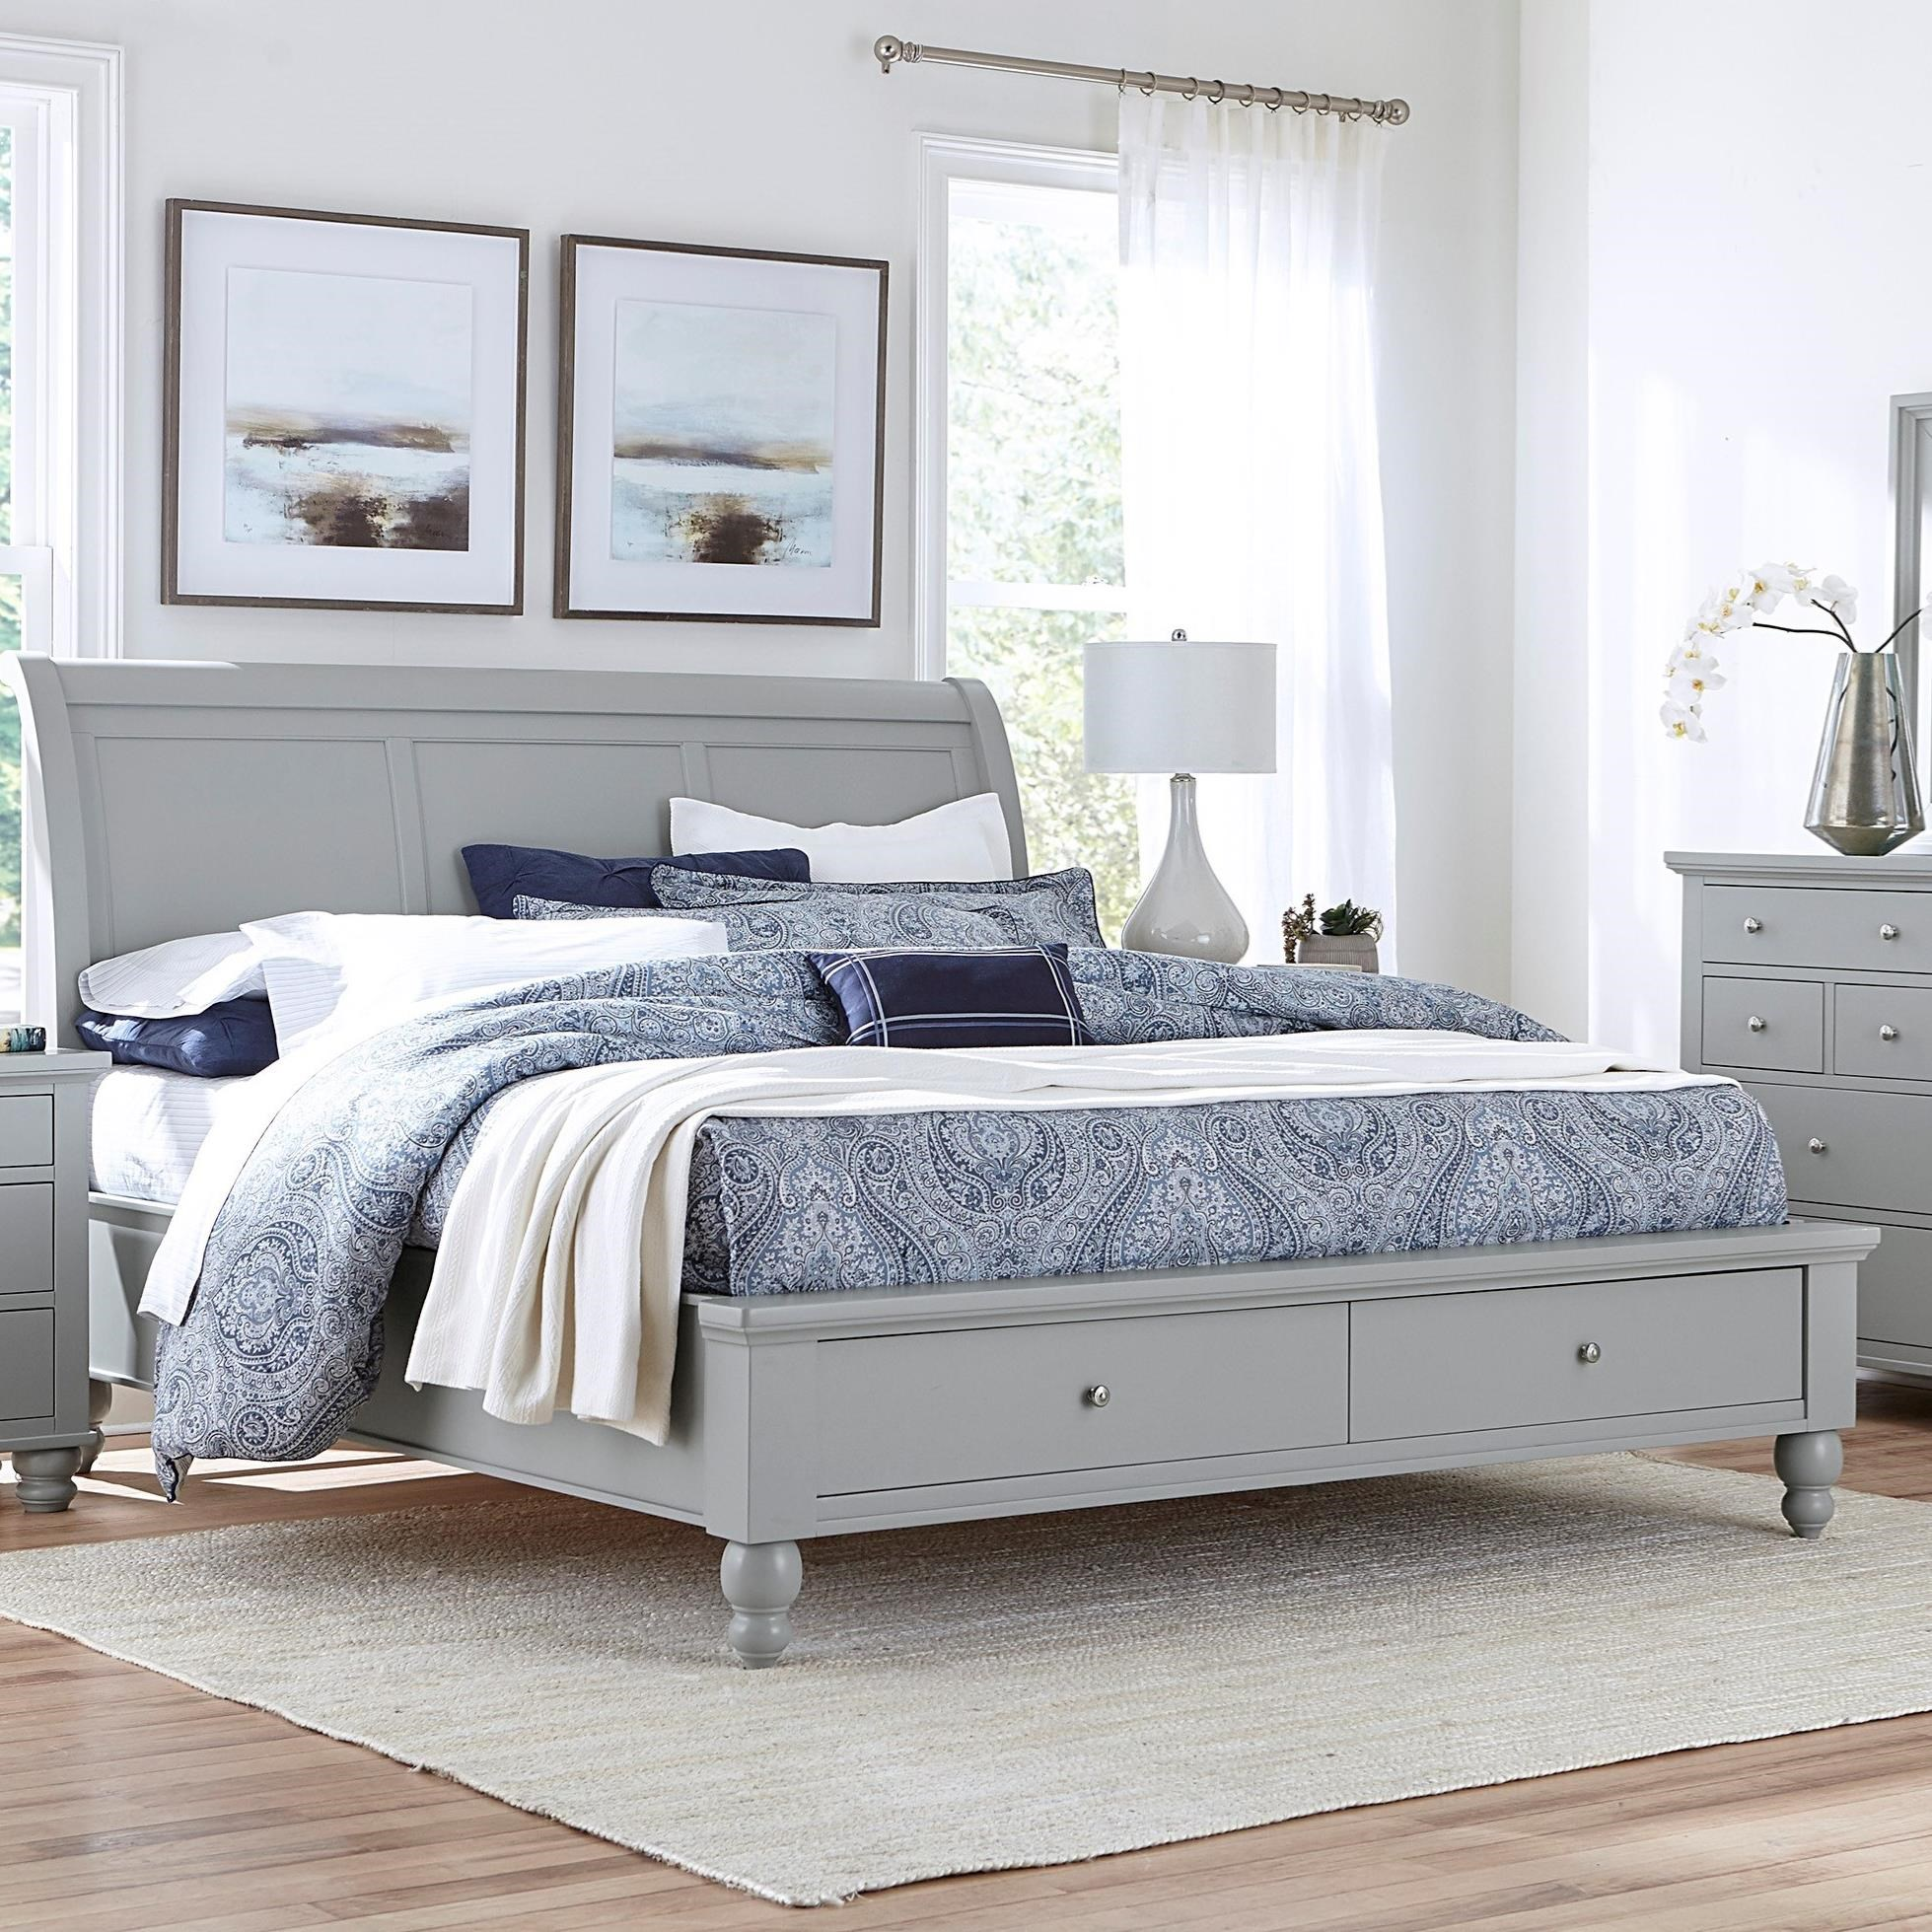 Cambridge King Storage Sleigh Bed by Aspenhome at Stoney Creek Furniture